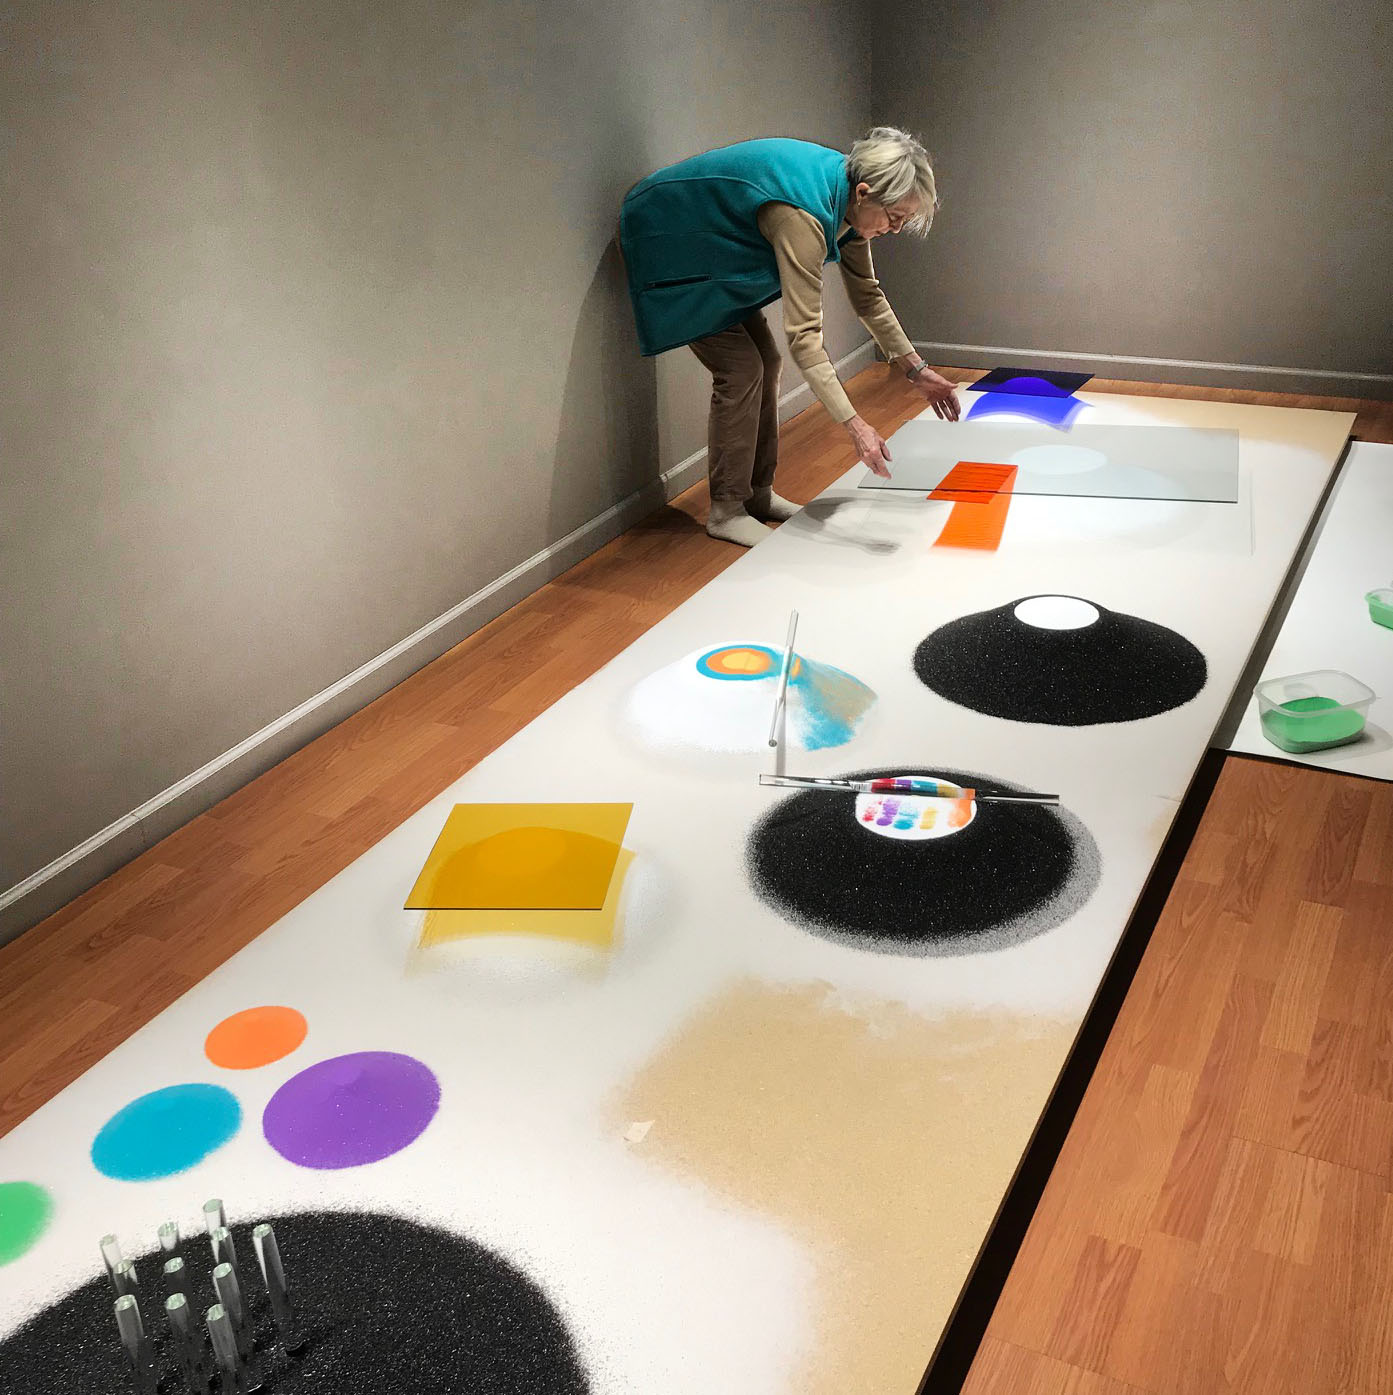 TRANSPARENT MOVES in progress at State of the Art Gallery 2019